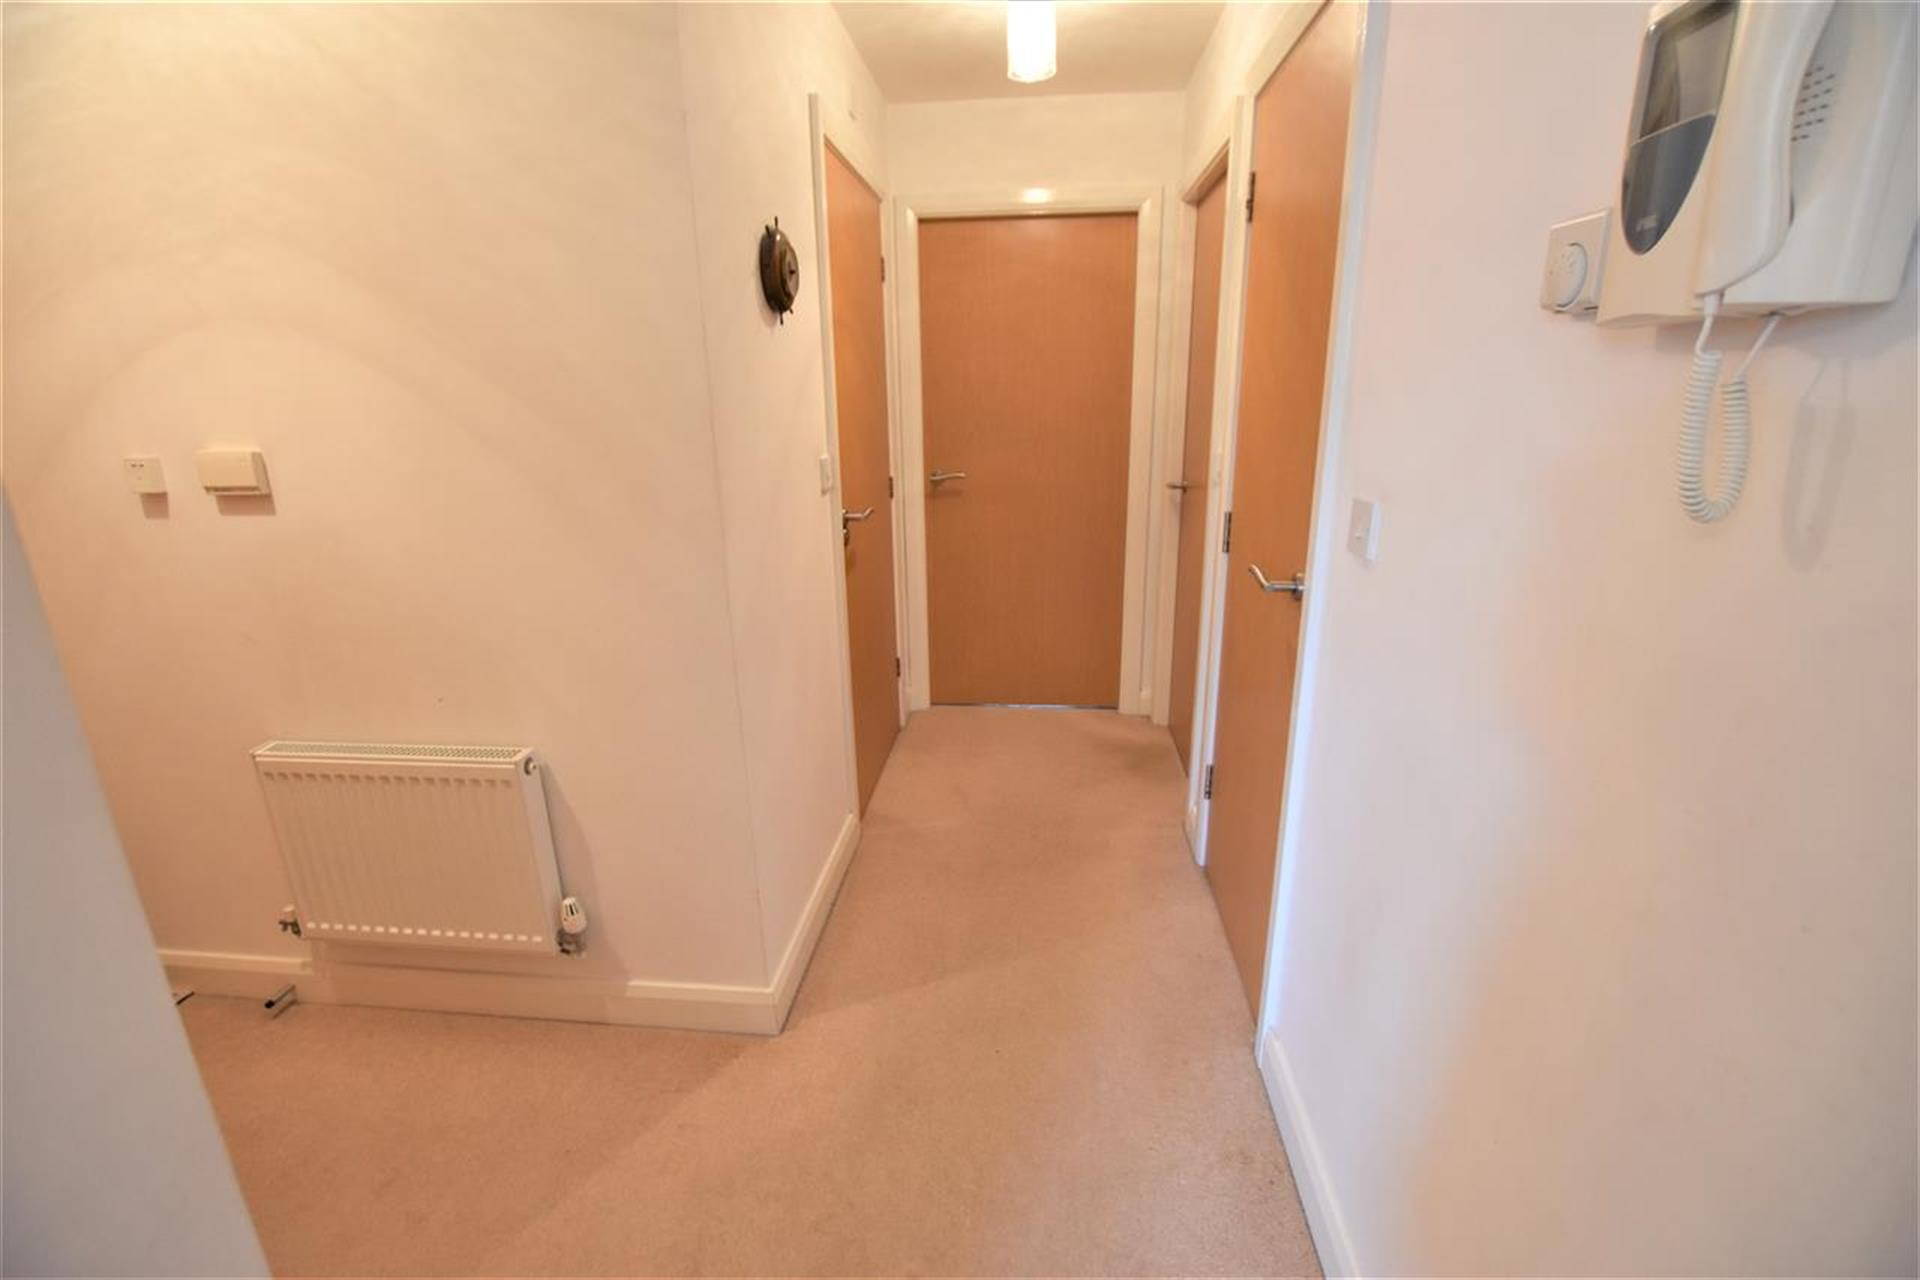 2 Bedroom Apartment Flat / Apartment For Sale - Hallway